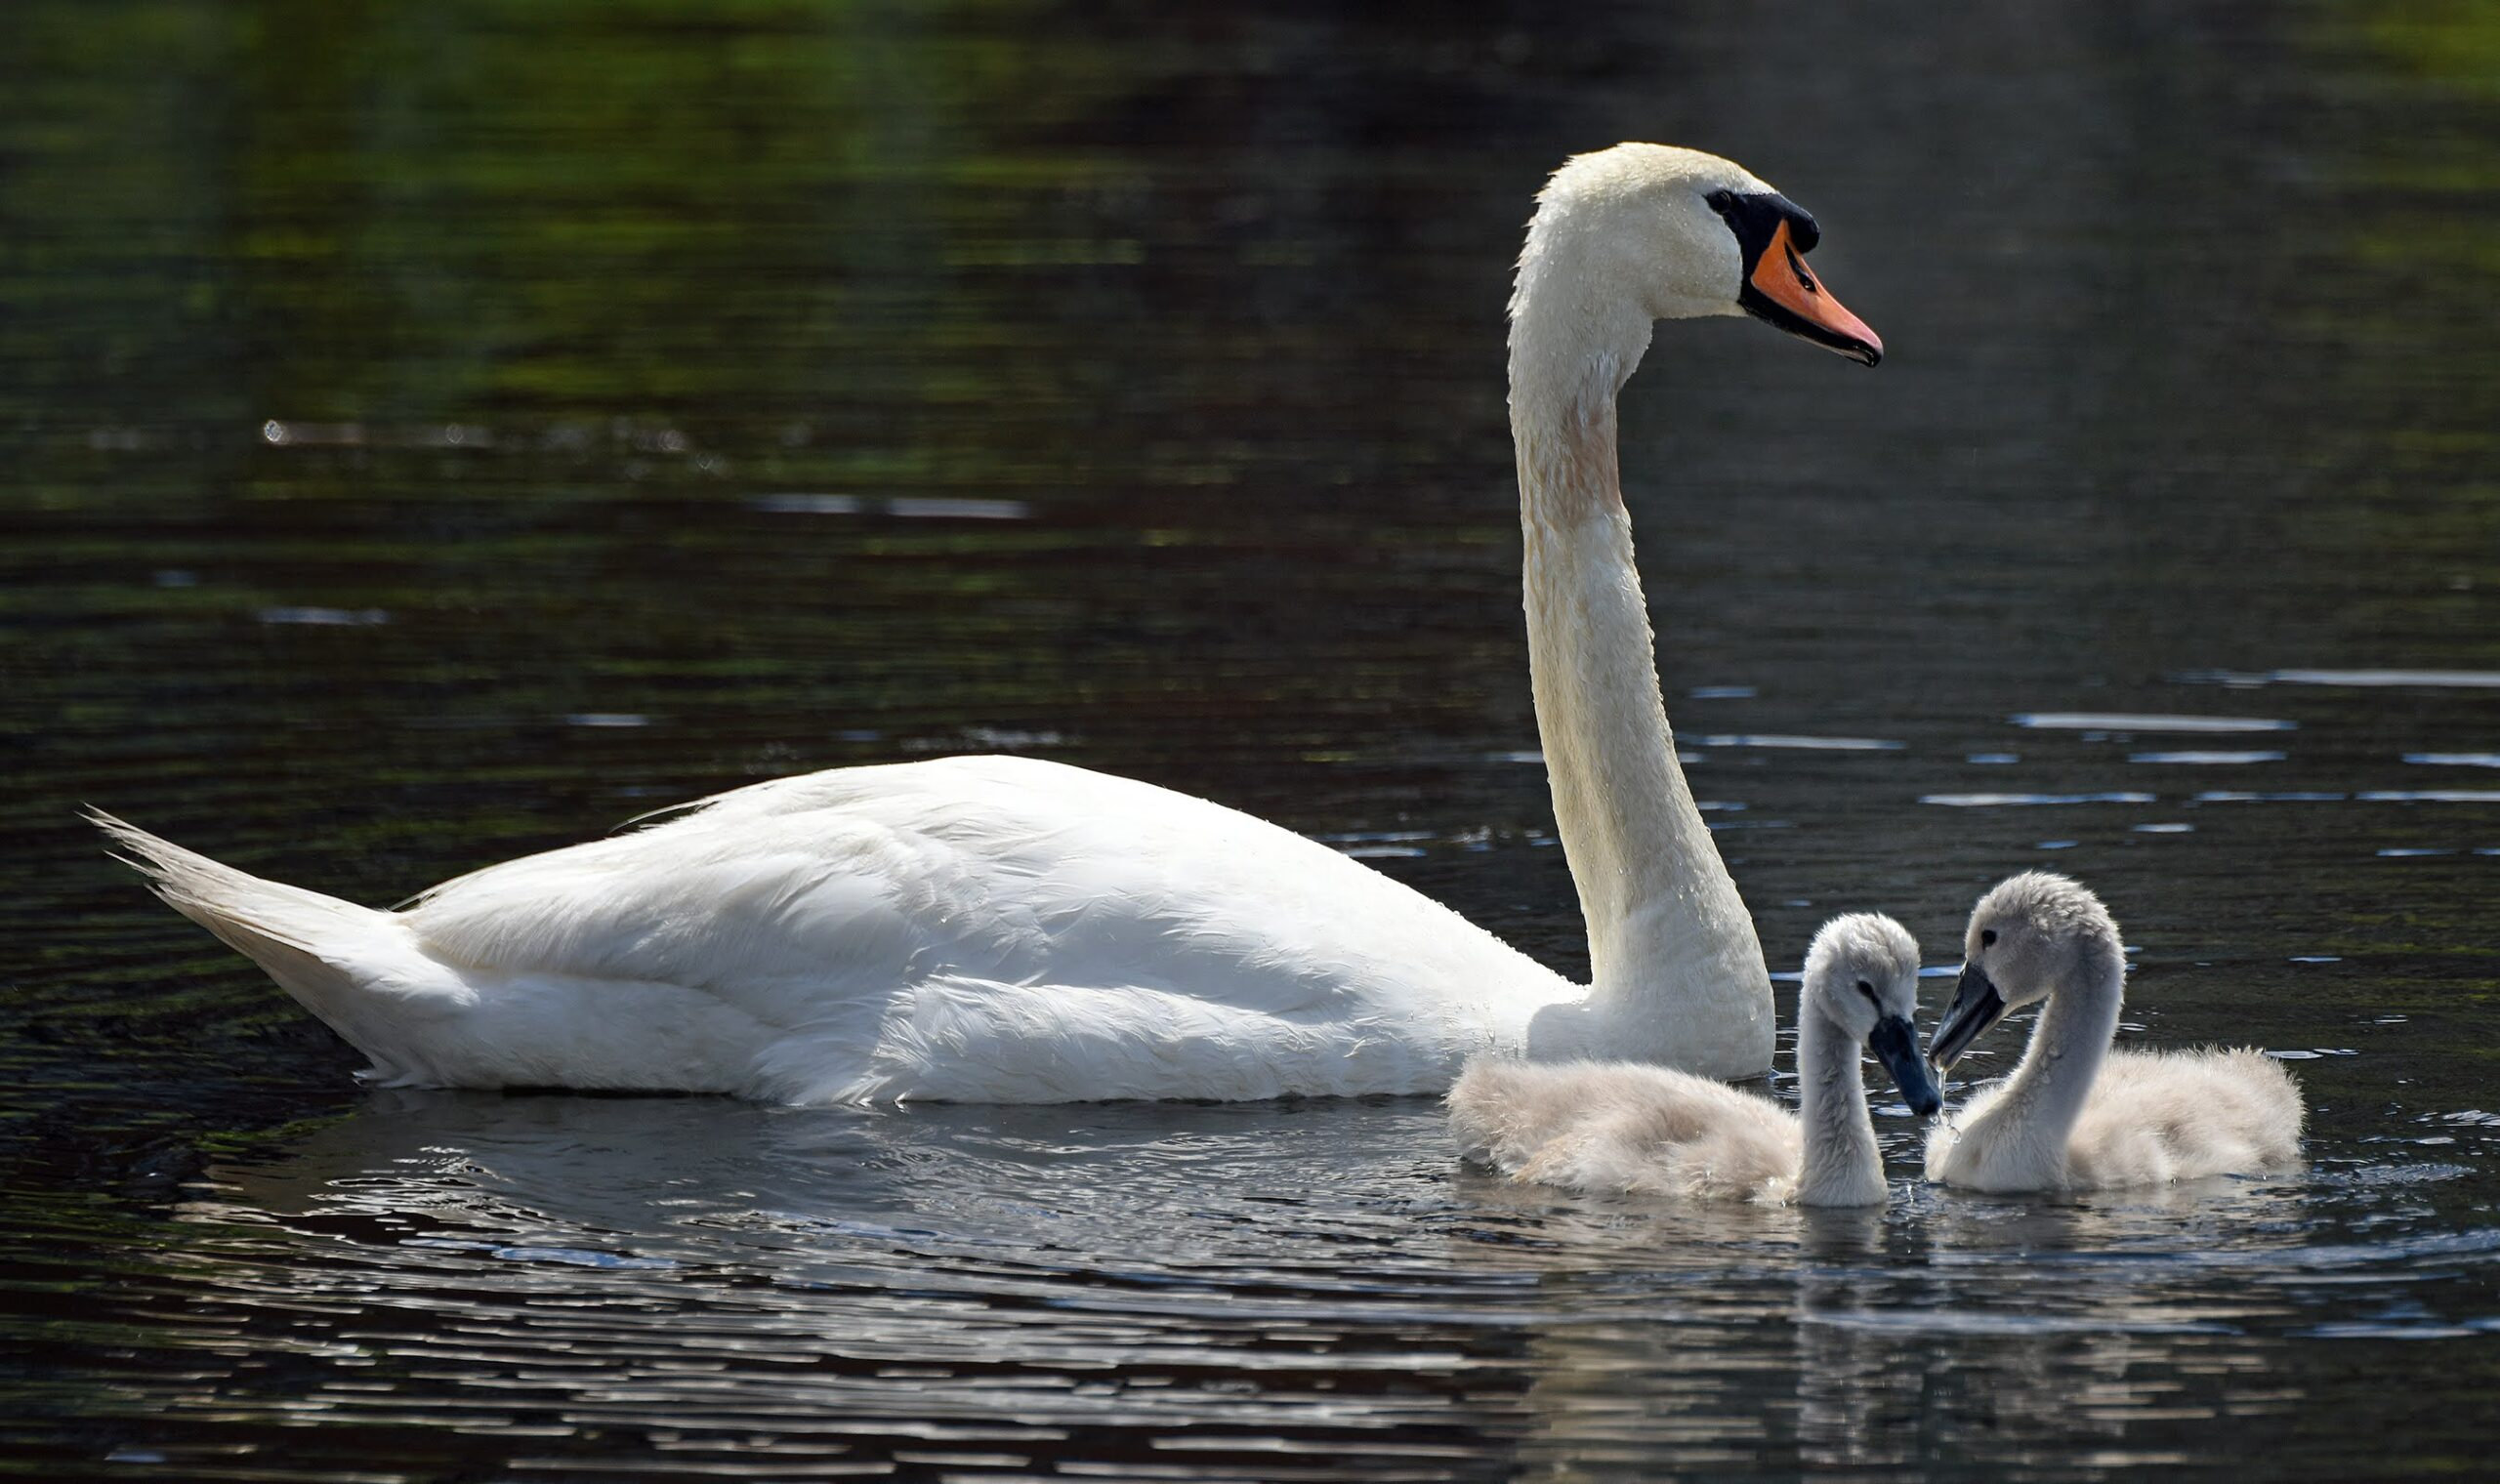 Two swan chicks remained on the Charles River with their father as of late June. Credit: Derrick Z. Jackson